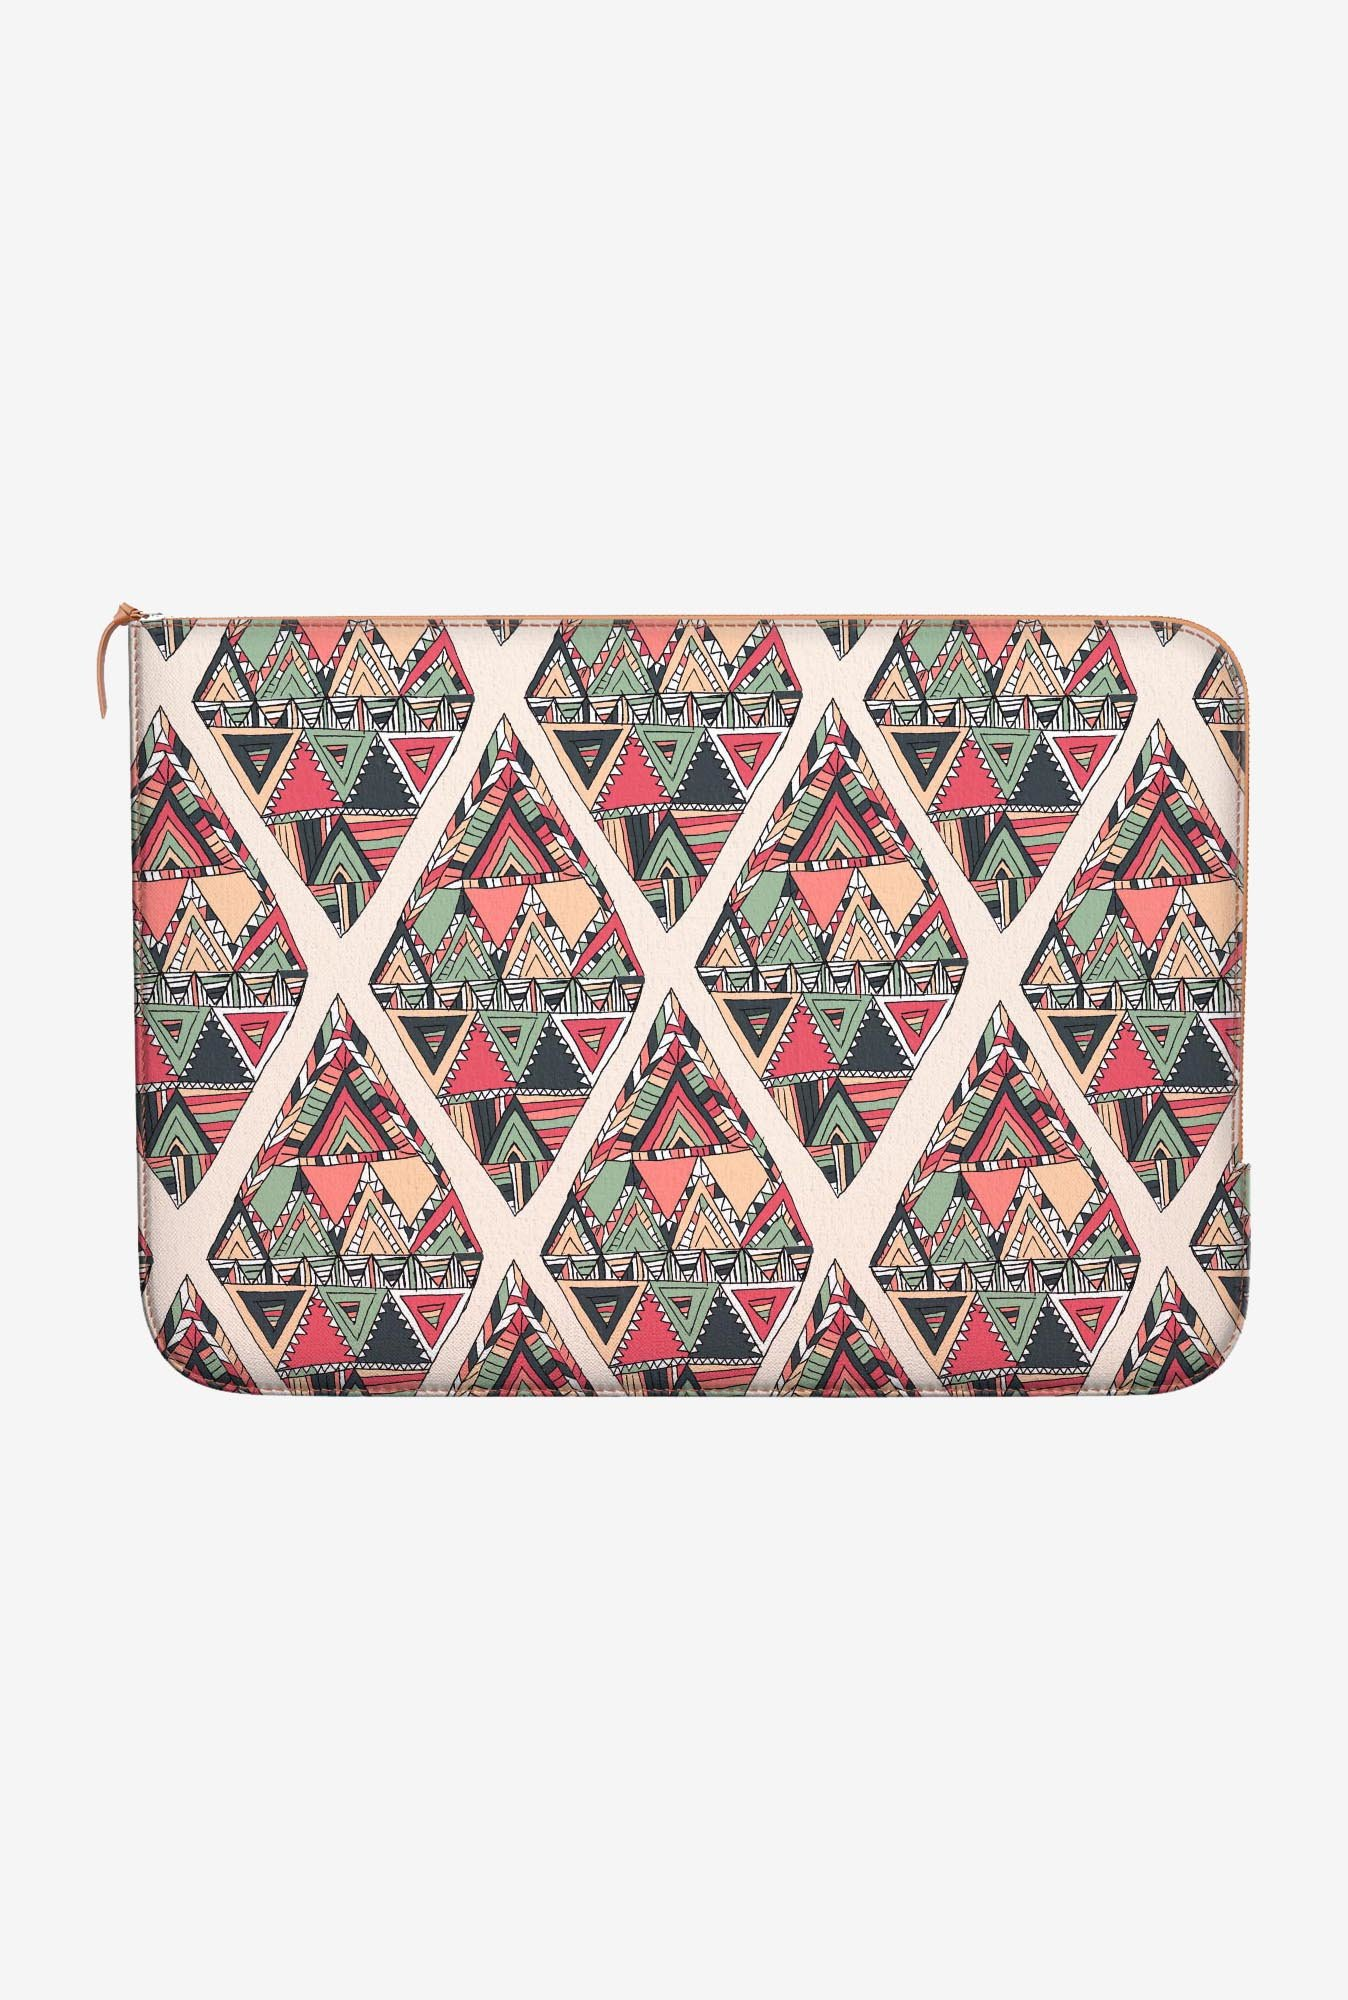 DailyObjects Chic Triangle MacBook Pro 13 Zippered Sleeve